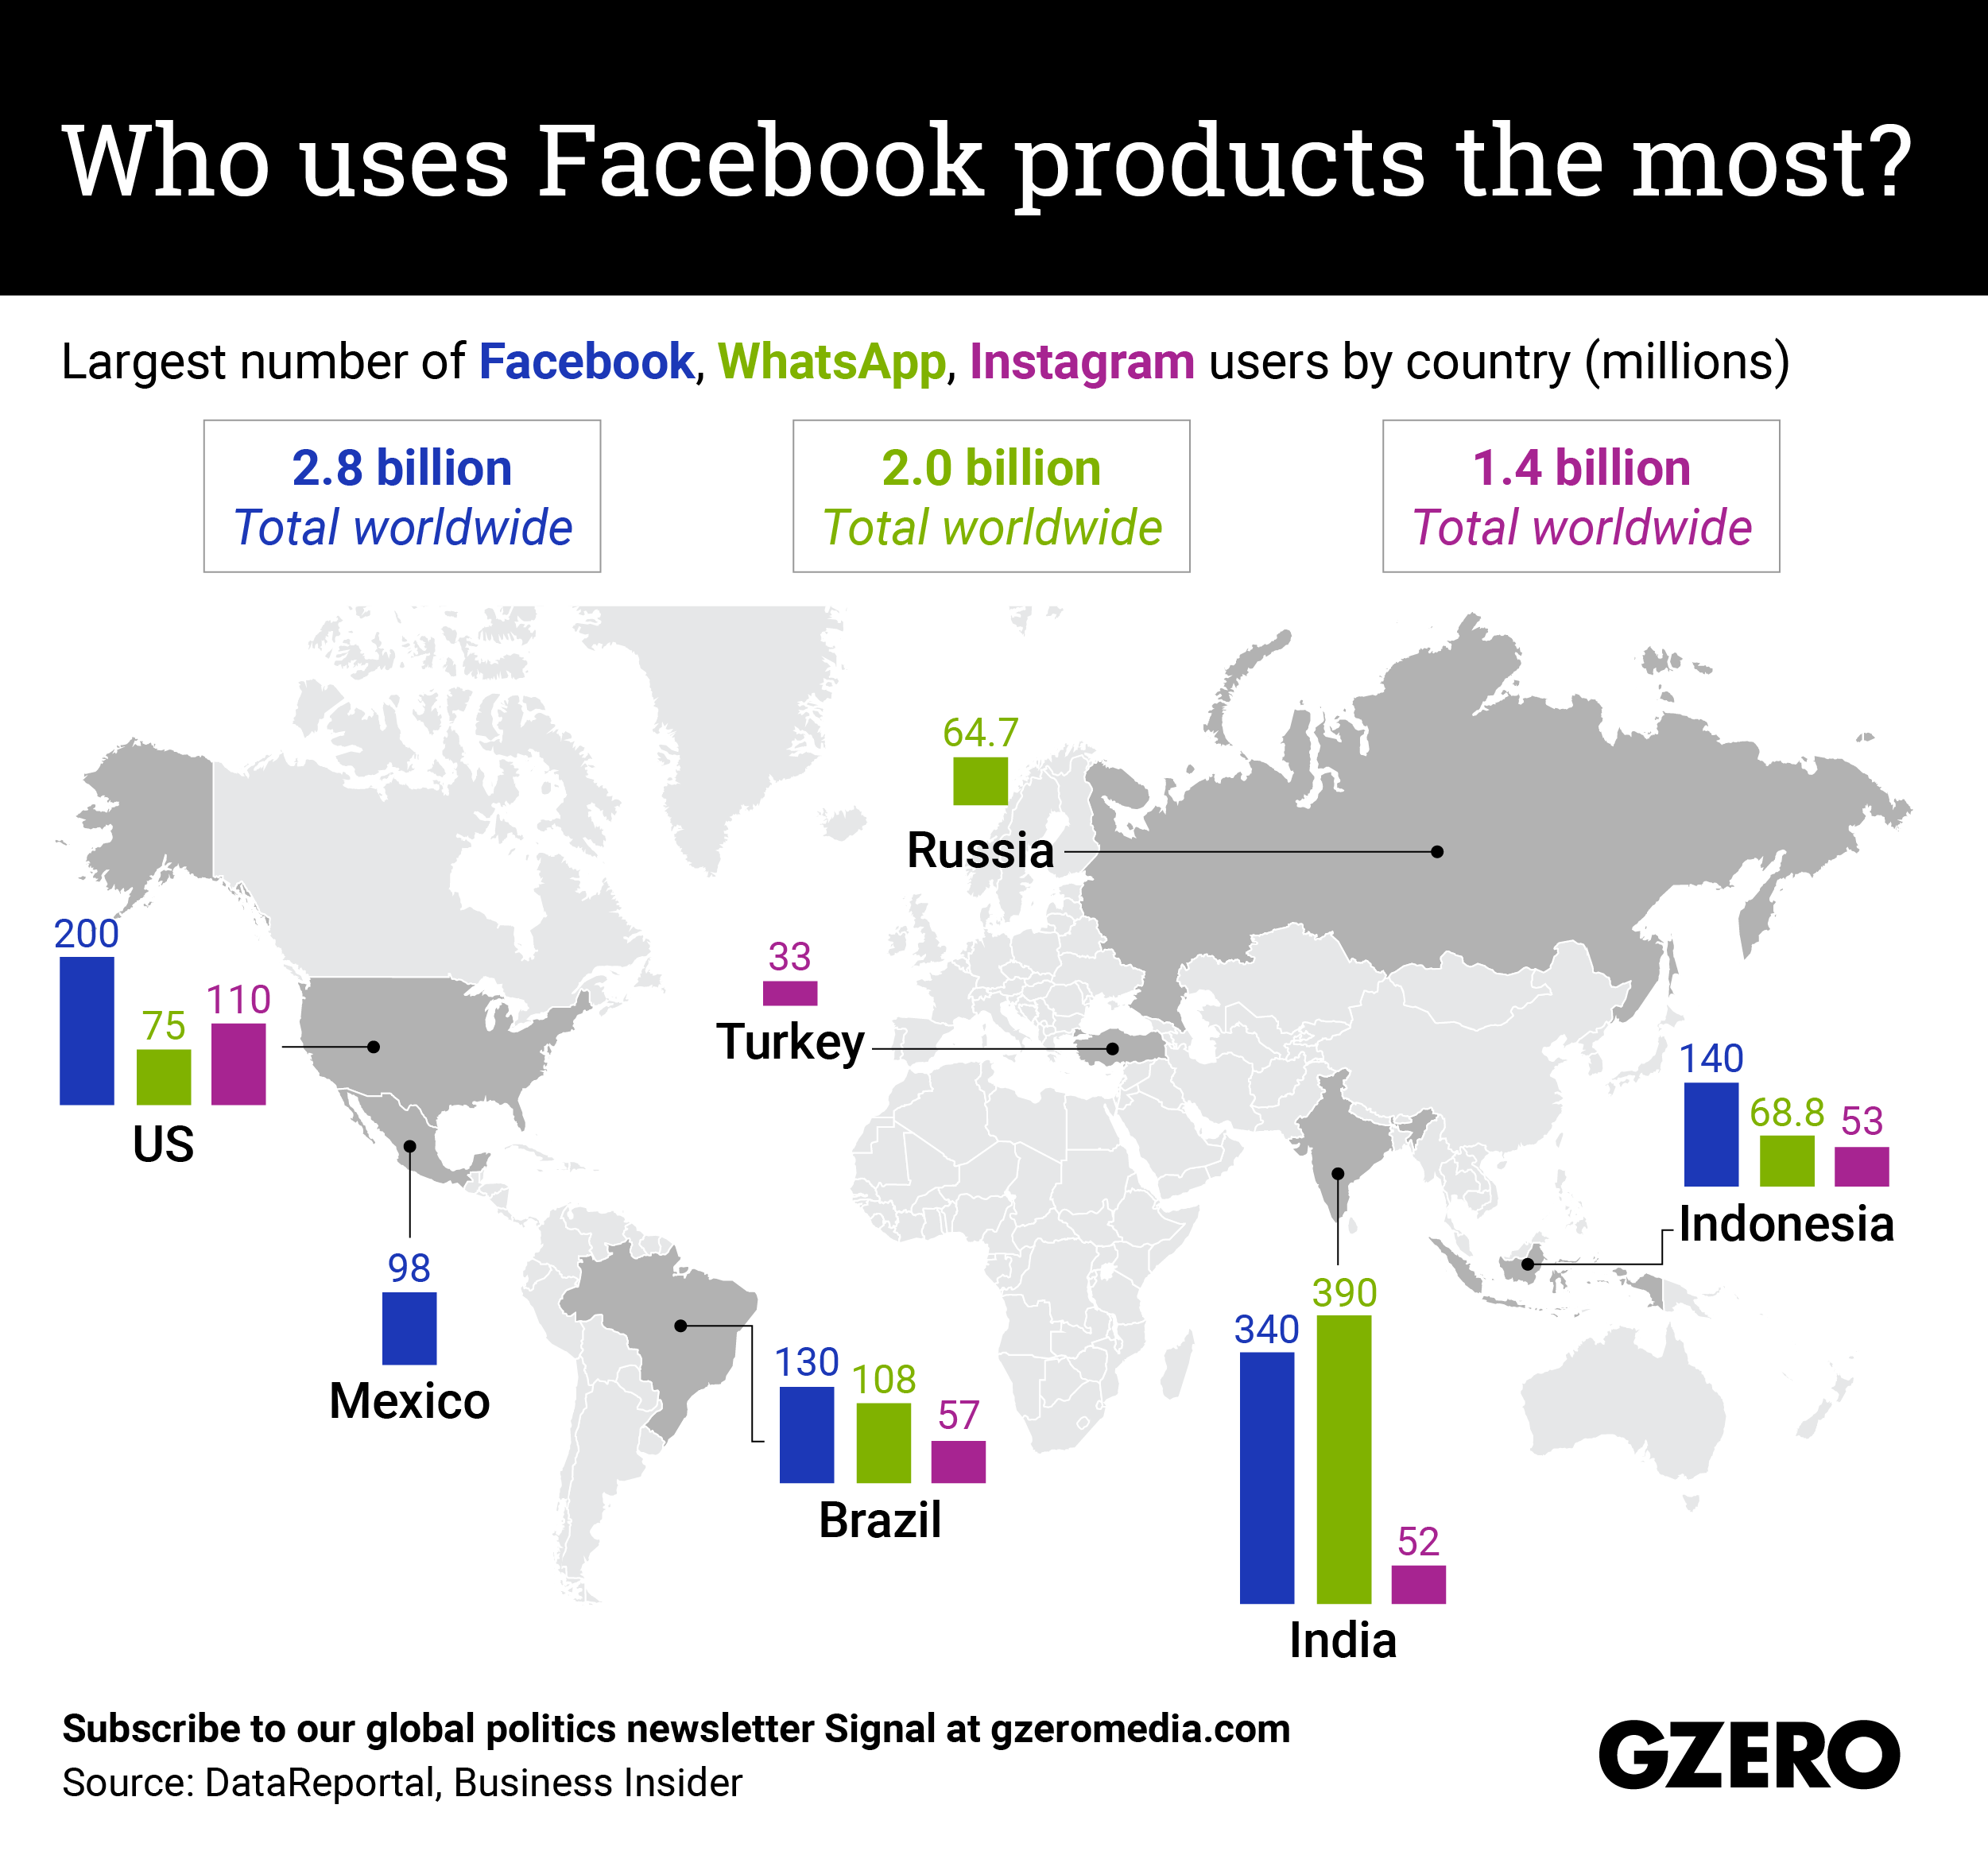 Largest number of Facebook, WhatsApp, Instagram users by country (millions)